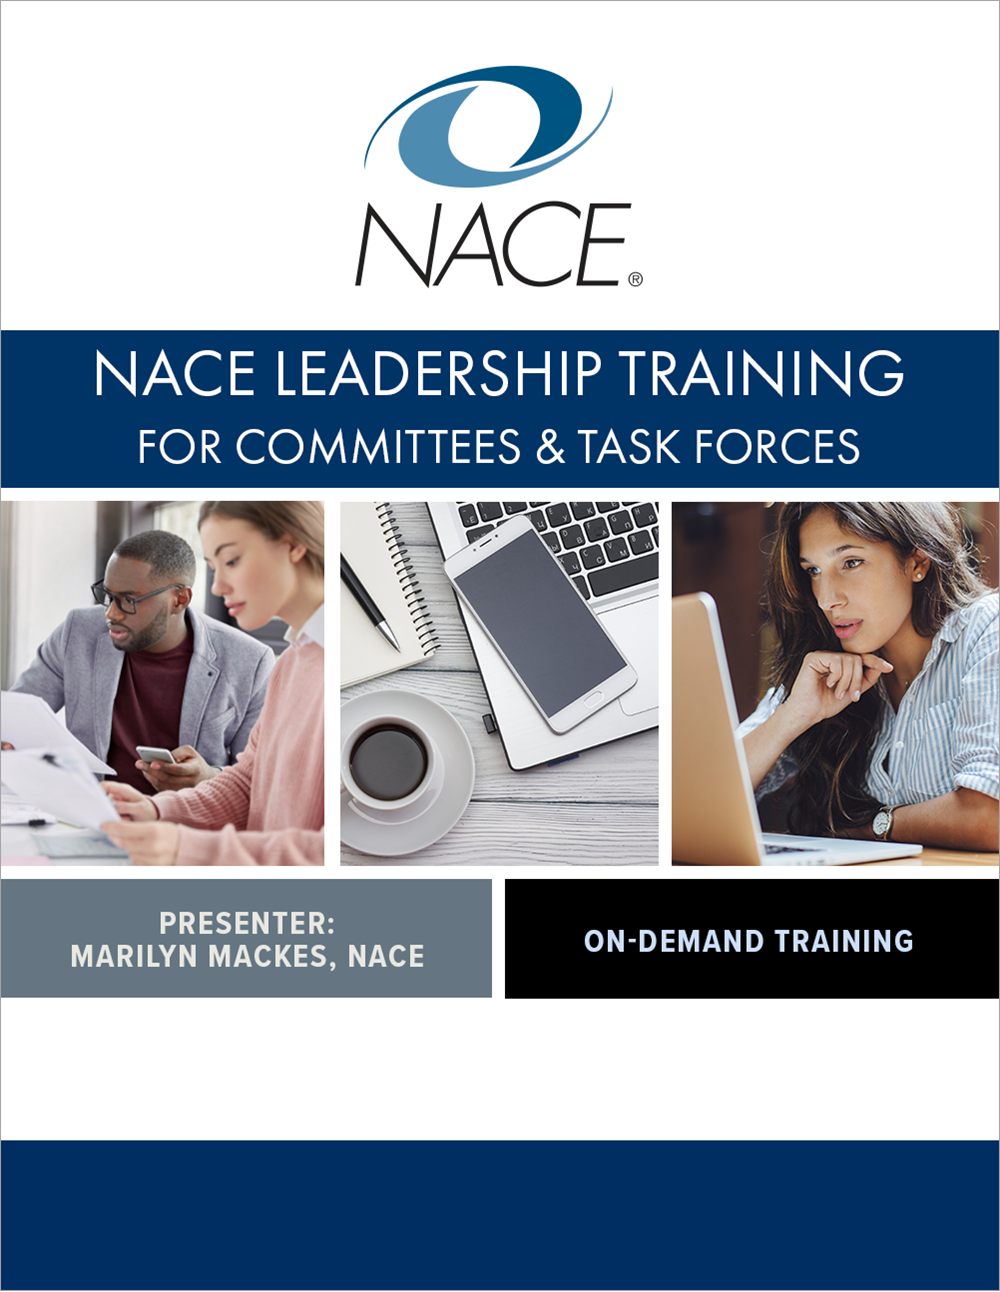 Leadership Training for Committees & Task Forces